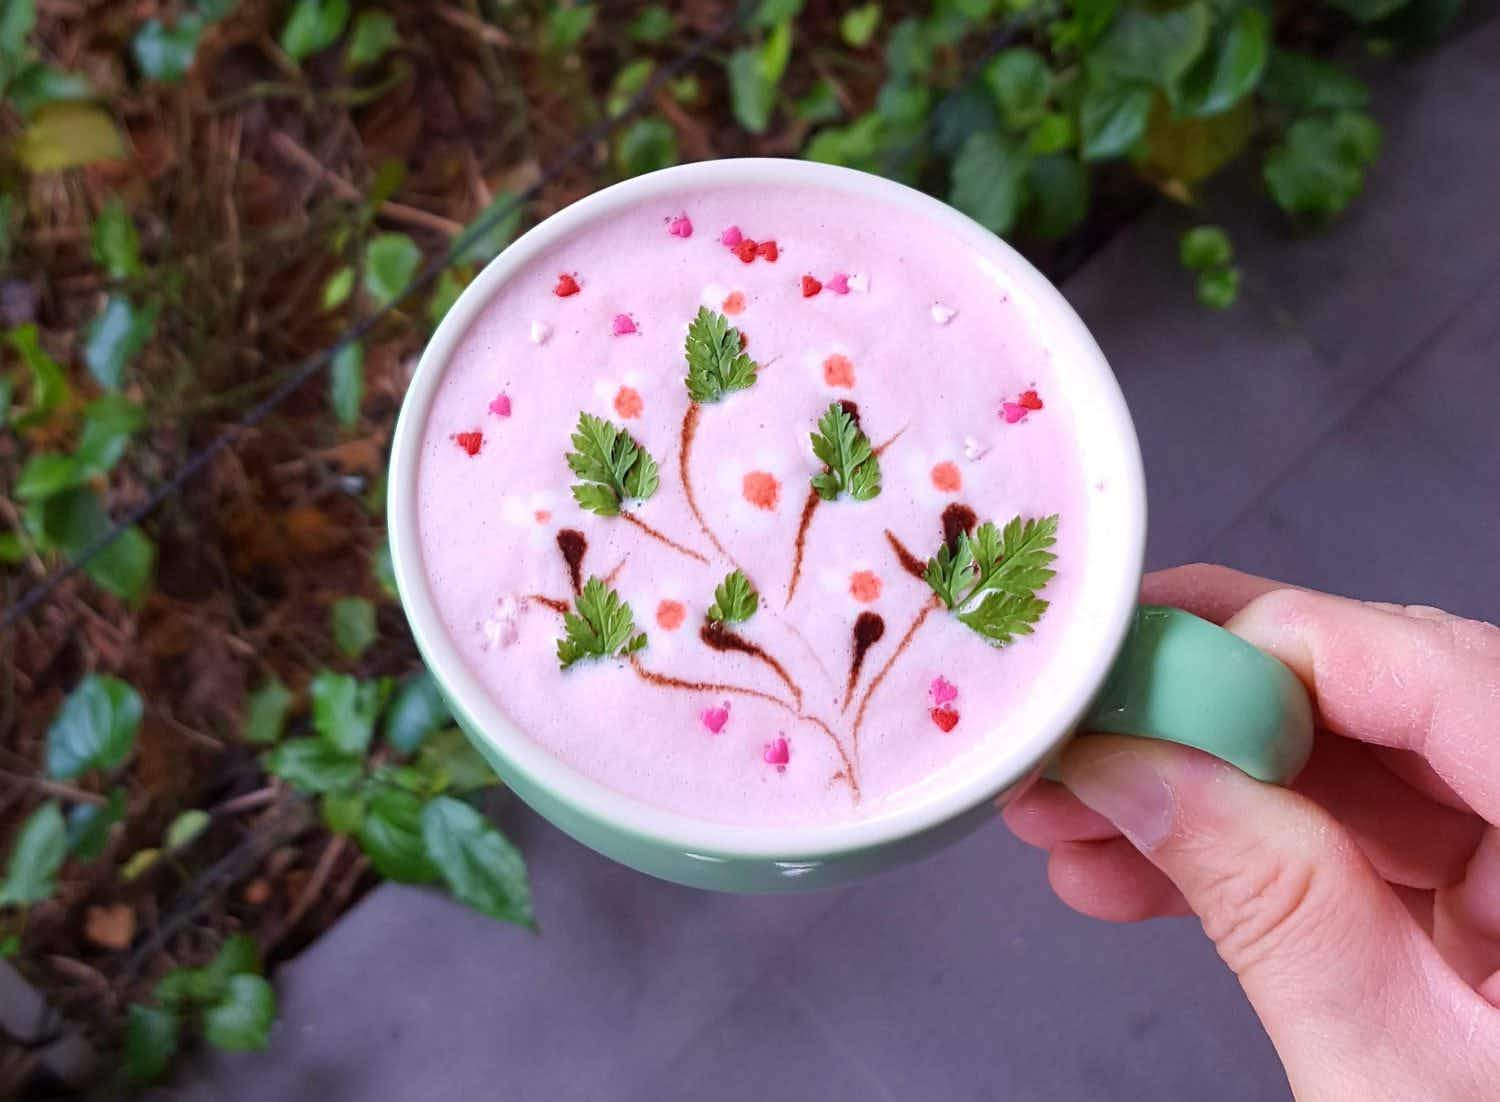 This Singapore coffee shop's floral lattes are just begging to be Instagrammed